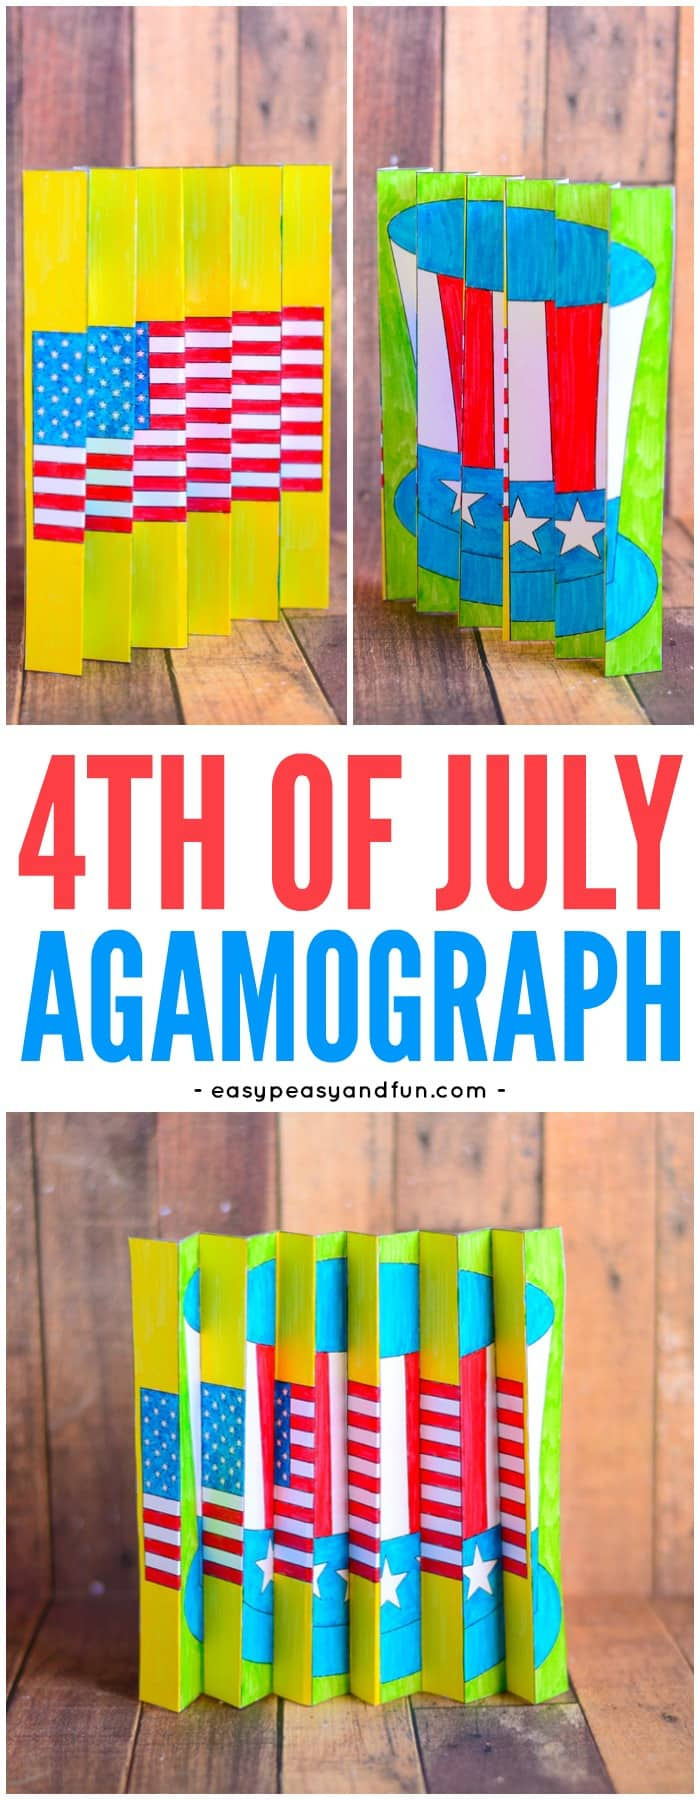 4th of July Agamograph Printable Template for Kids